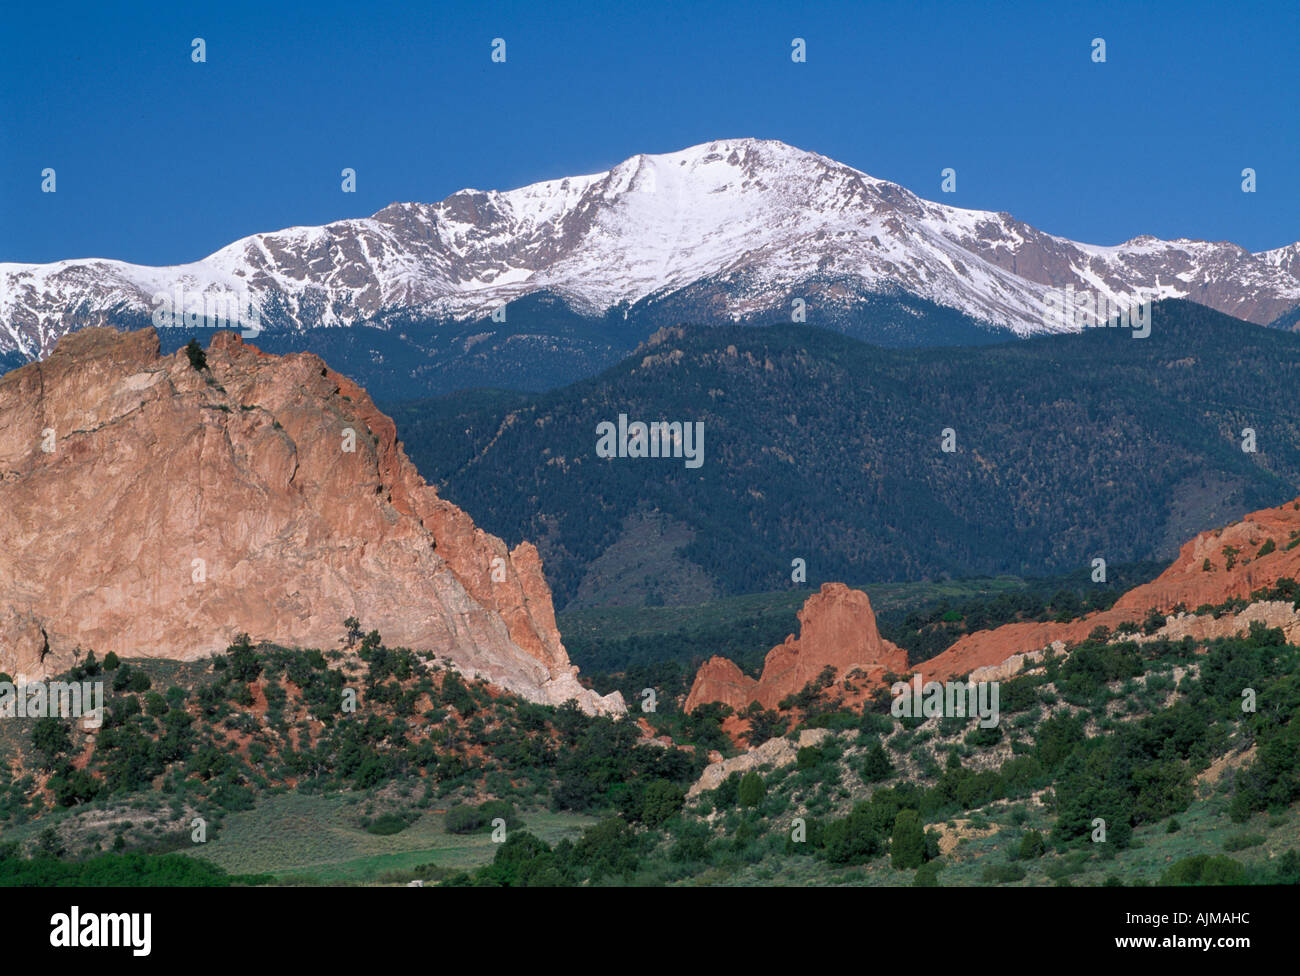 View of snowcapped Pikes Peak from Garden of the Gods near